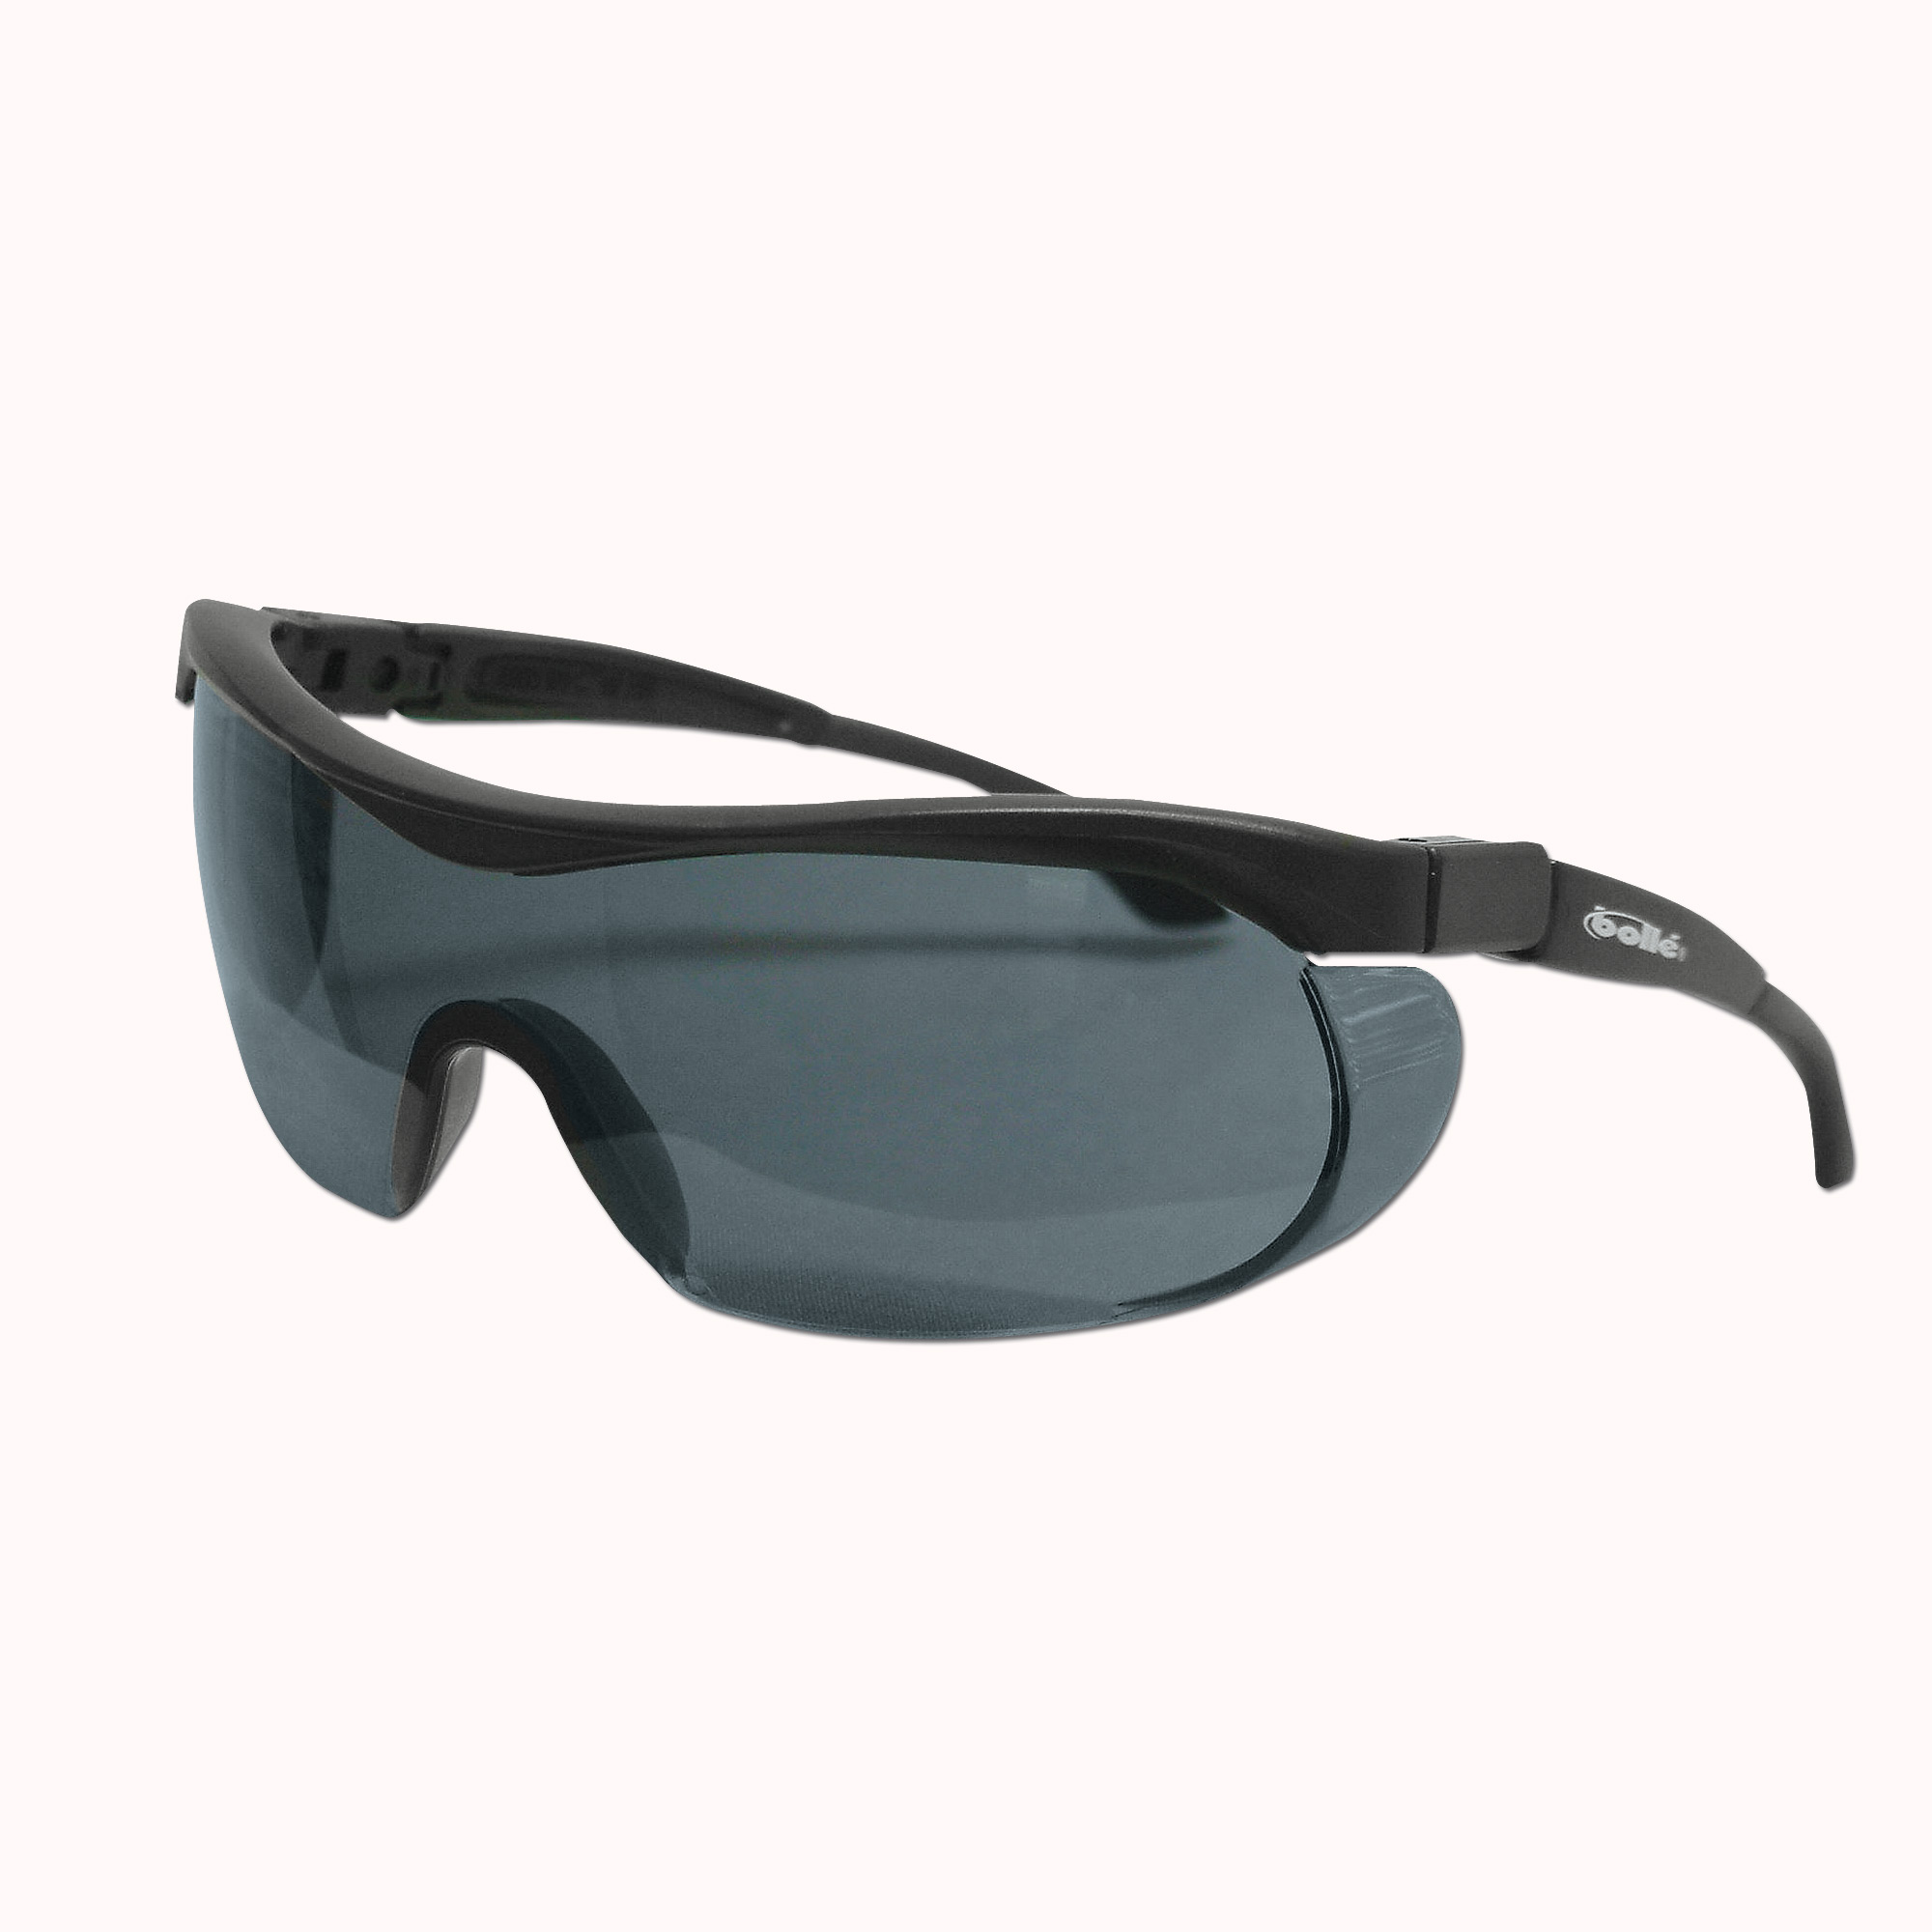 Safety Glasses Targa, black